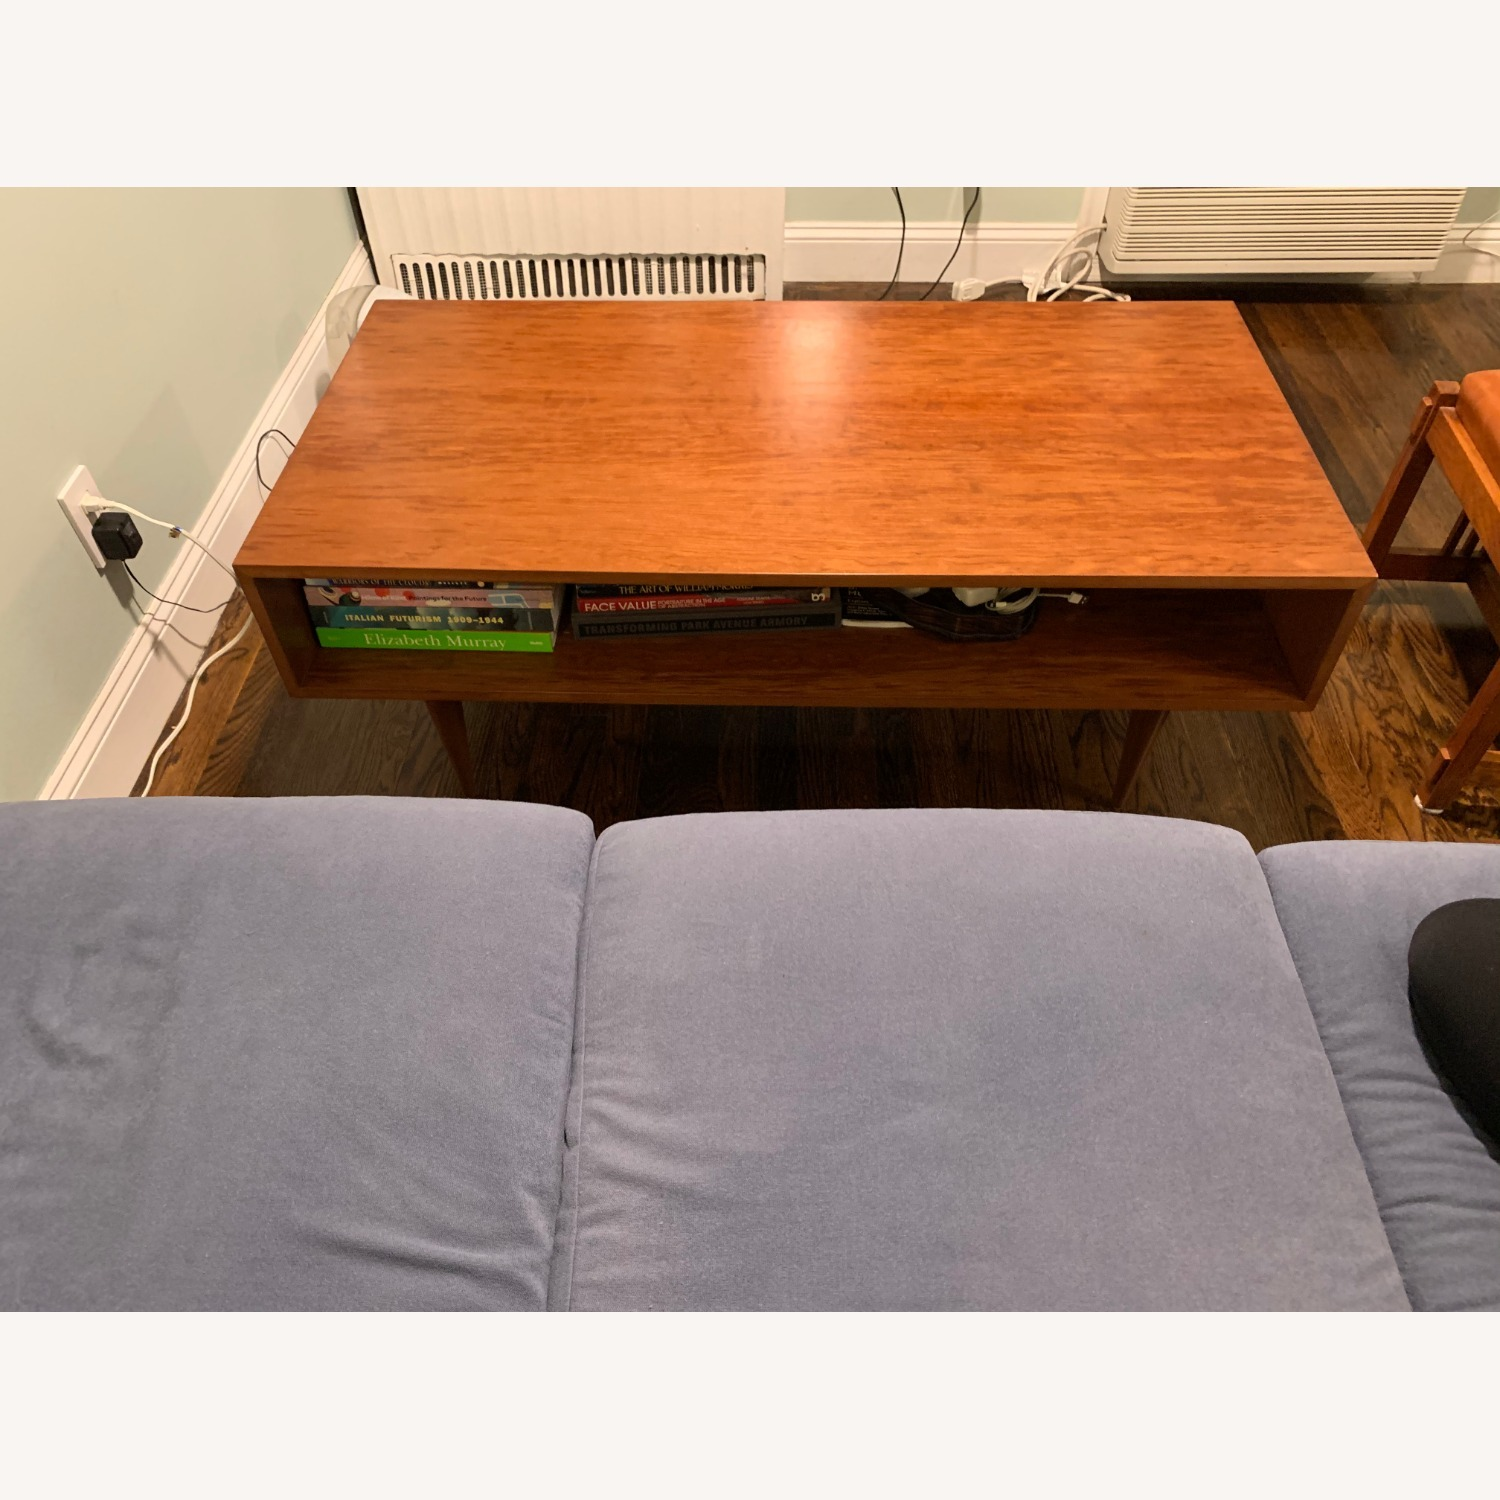 Urbangreen Furniture Coffee Table Cherry Wood Toffee Color - image-2